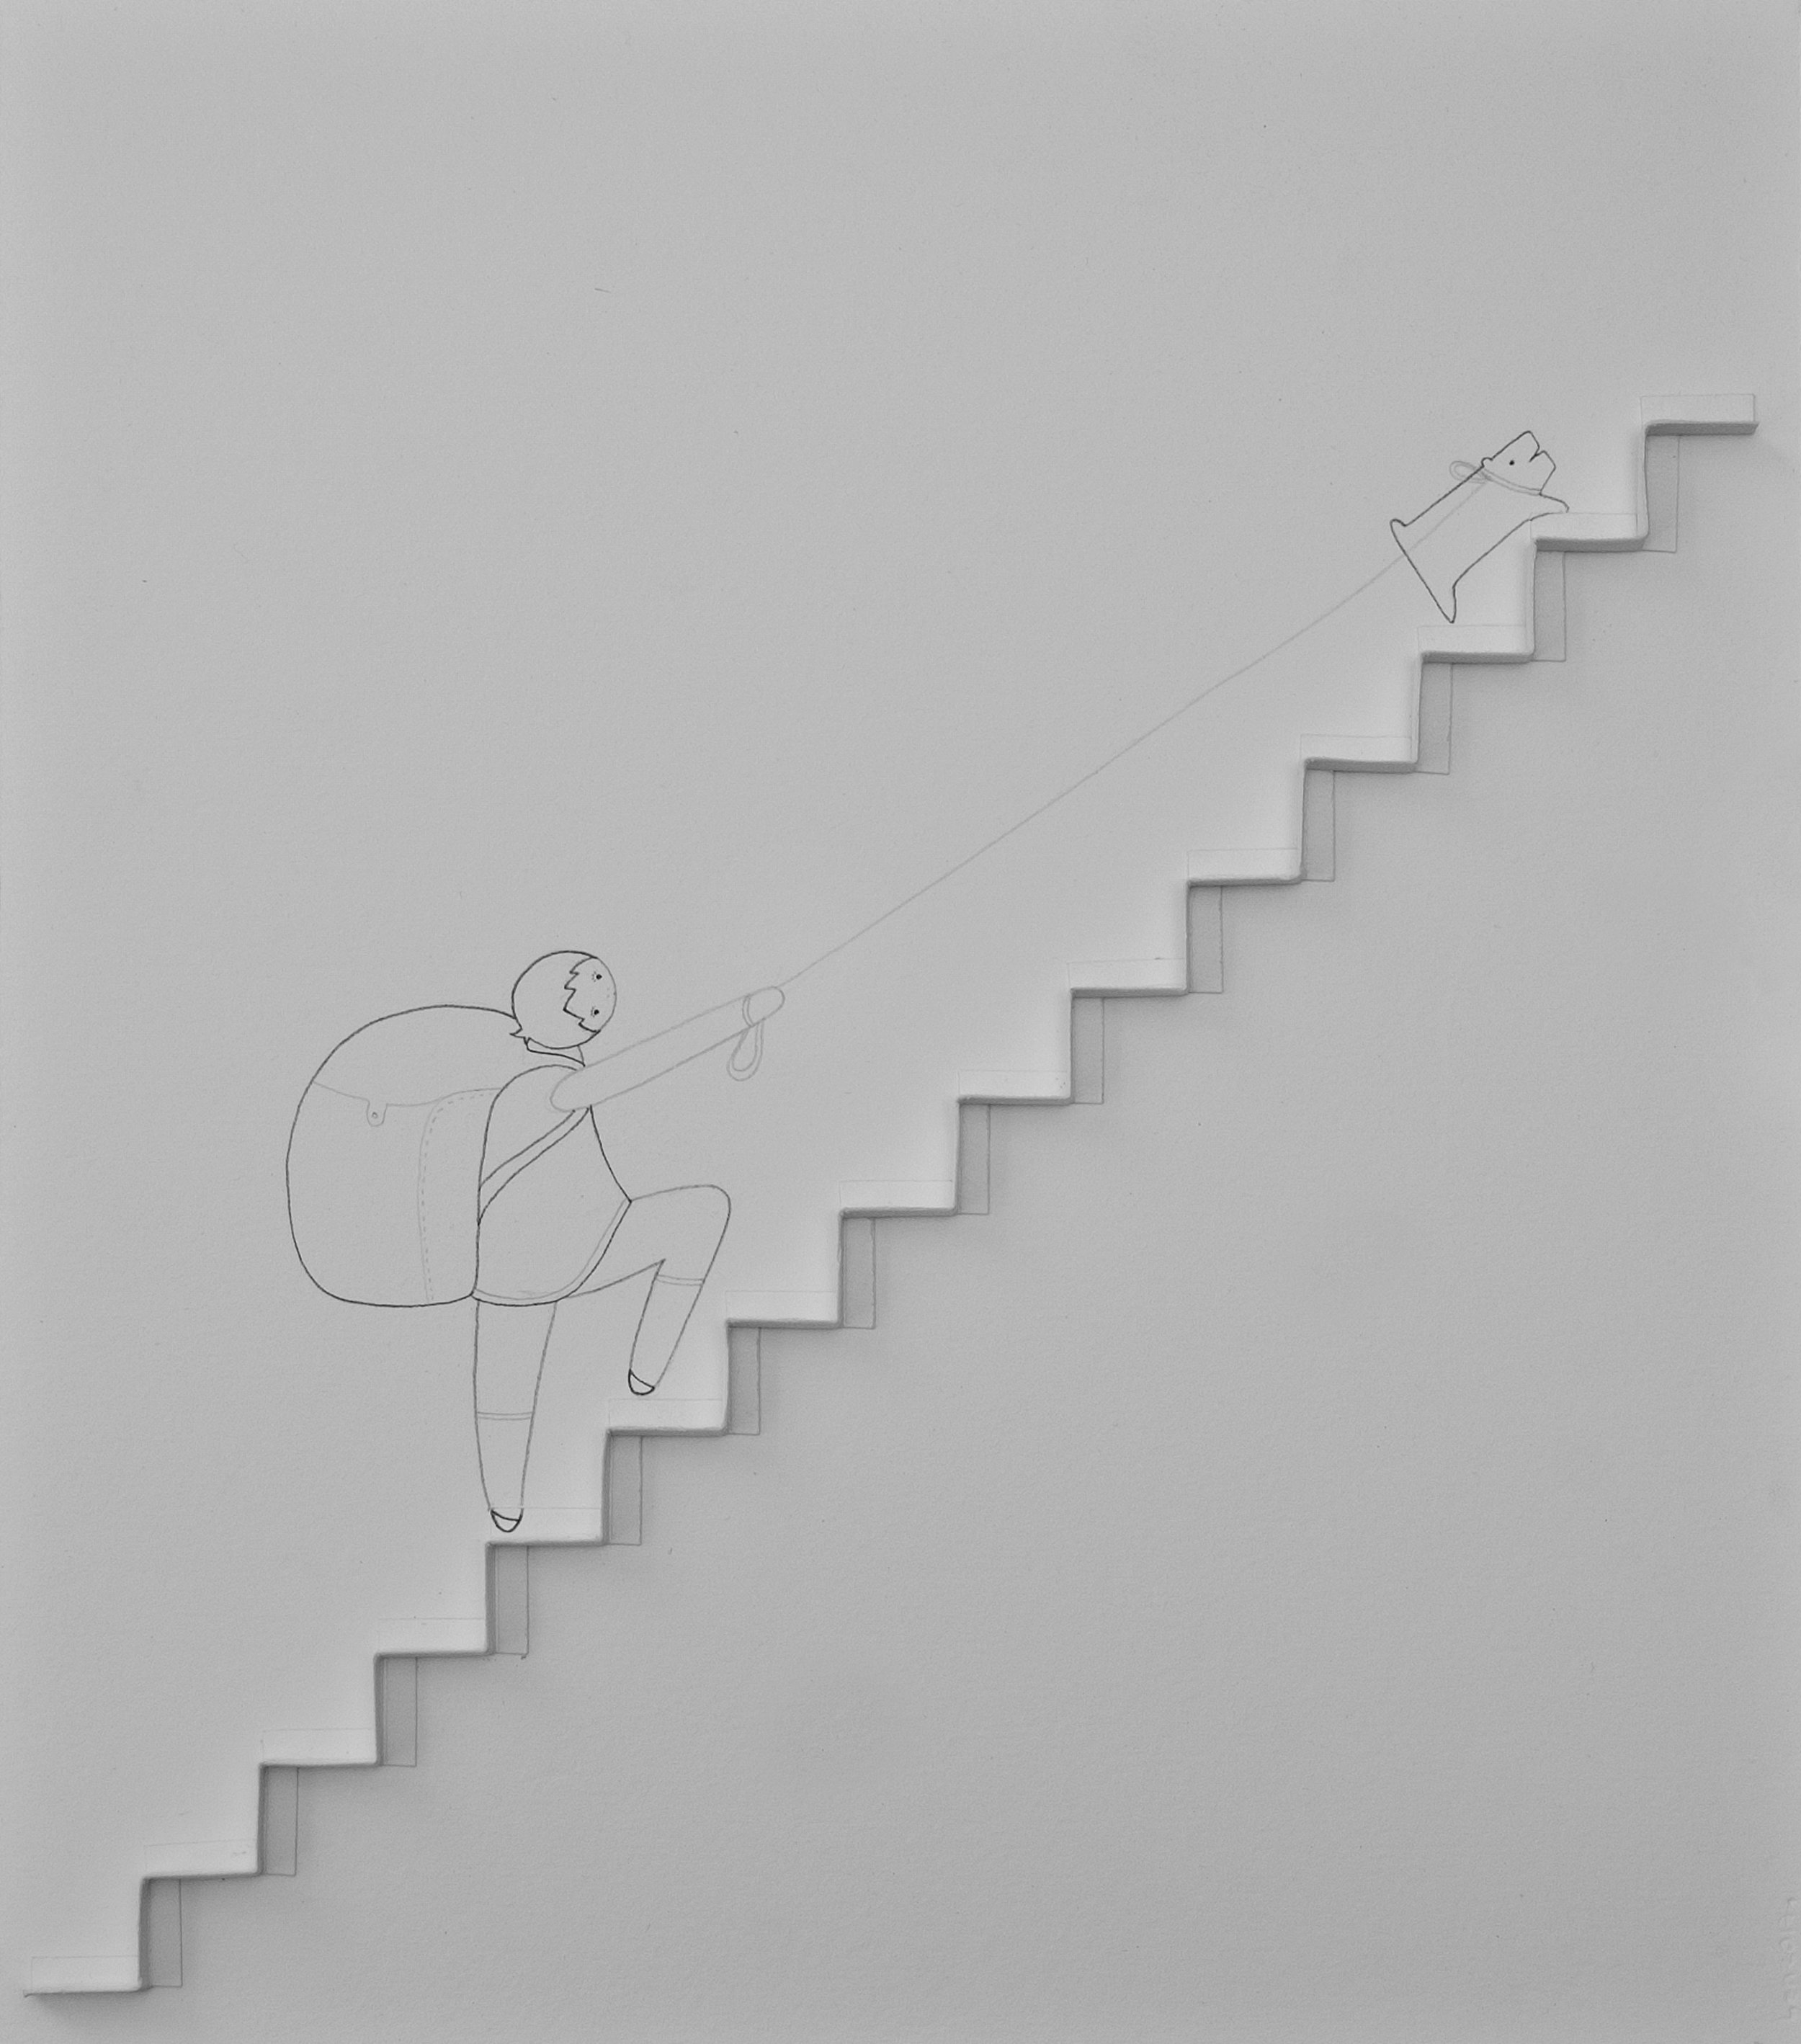 Untitled (Stairs)